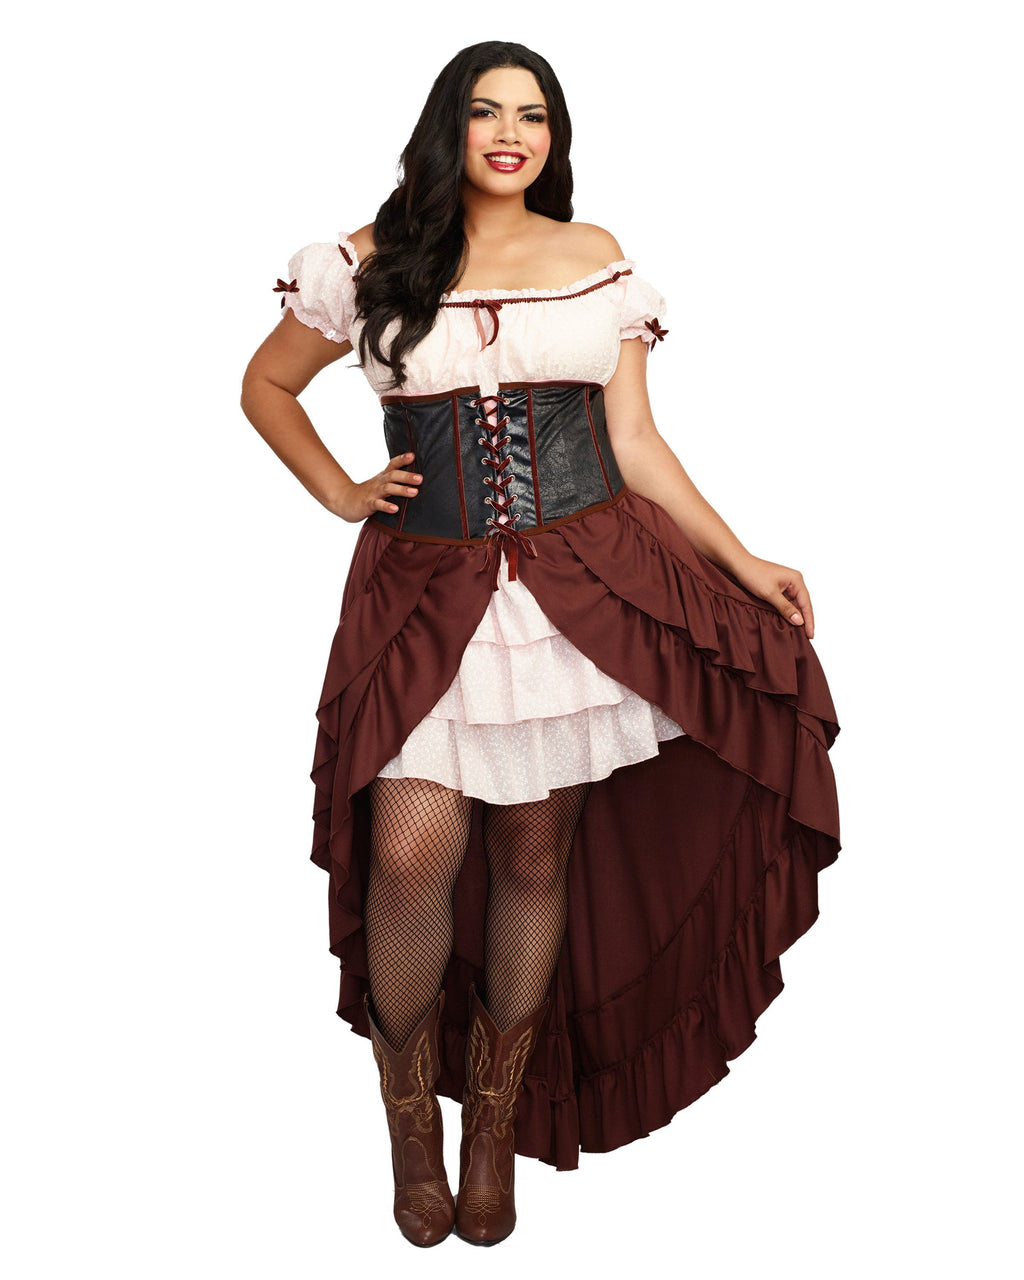 Plus Size Saloon Gal Women's Costume Dreamgirl Costume